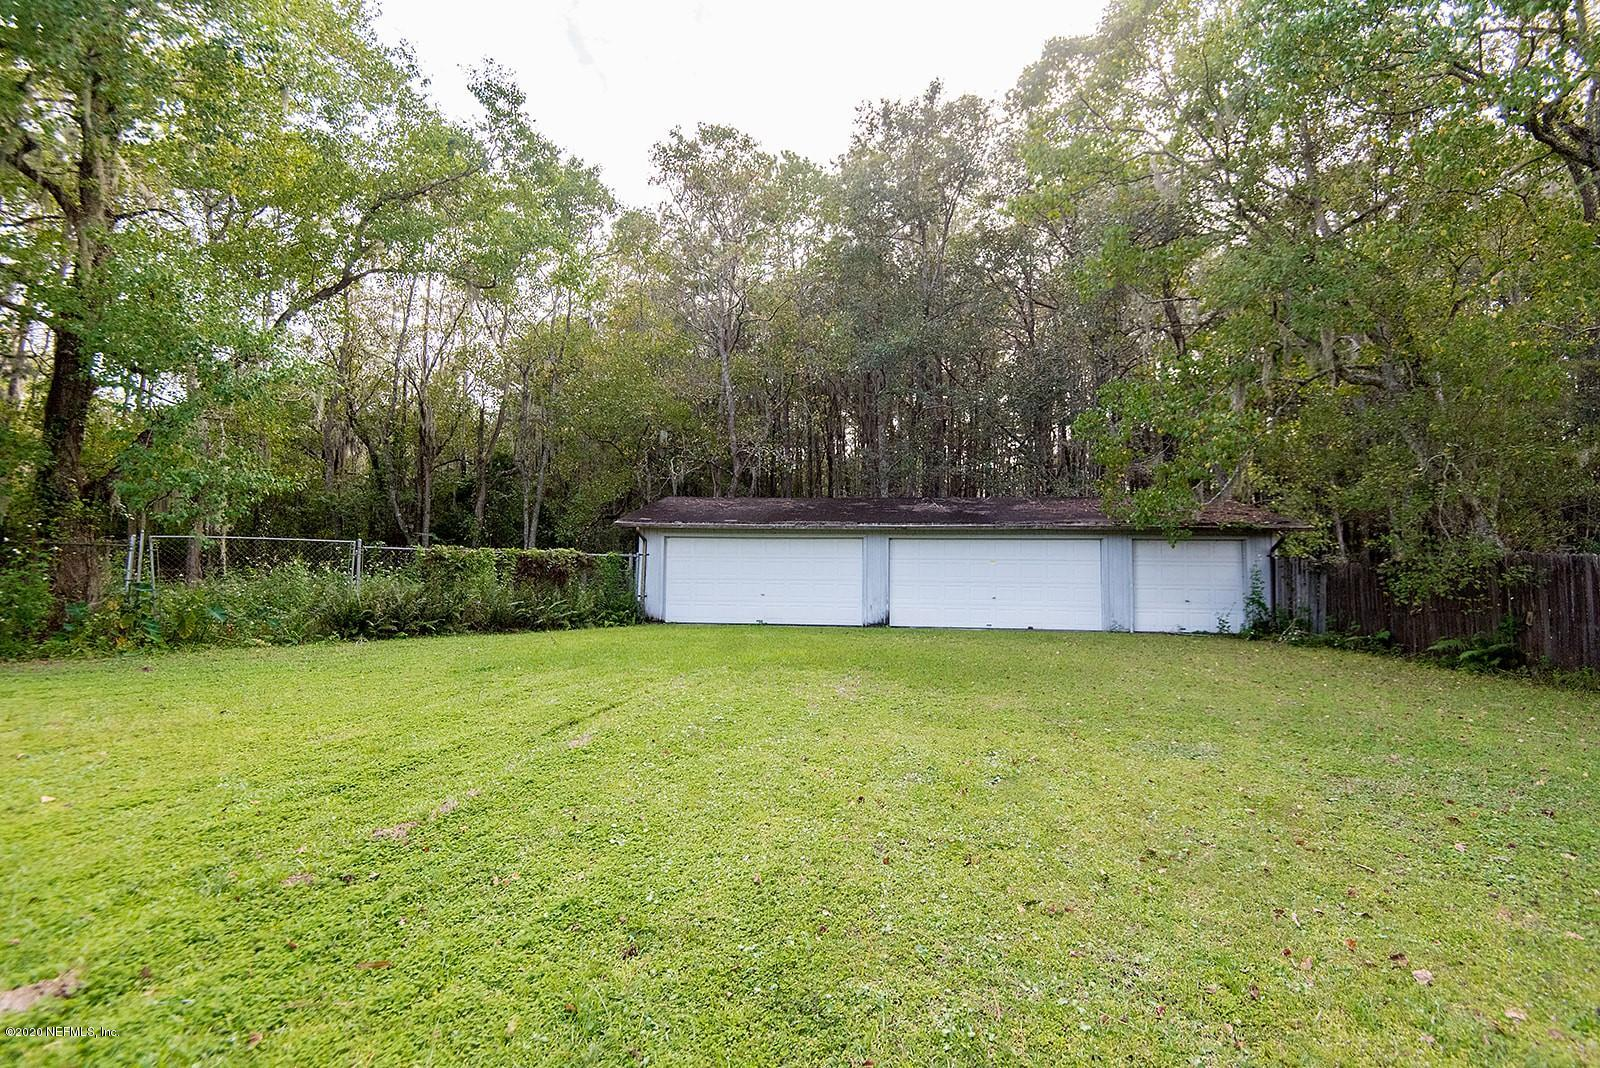 5273 COUNTY ROAD 218, MIDDLEBURG, FLORIDA 32068, 3 Bedrooms Bedrooms, ,2 BathroomsBathrooms,Residential,For sale,COUNTY ROAD 218,1075304